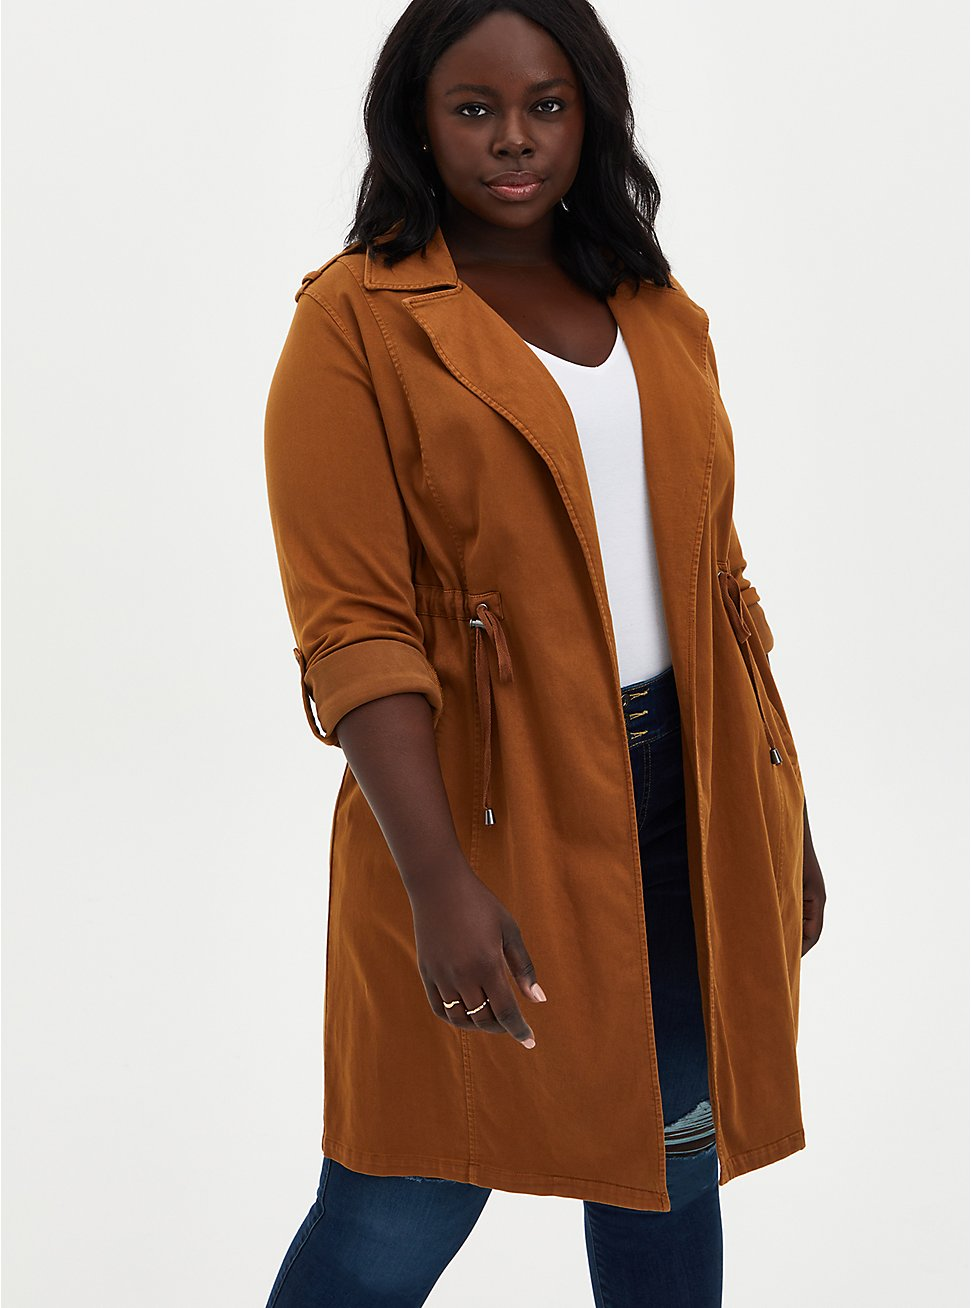 Cognac Twill Military Trench Coat, RUBBER, hi-res